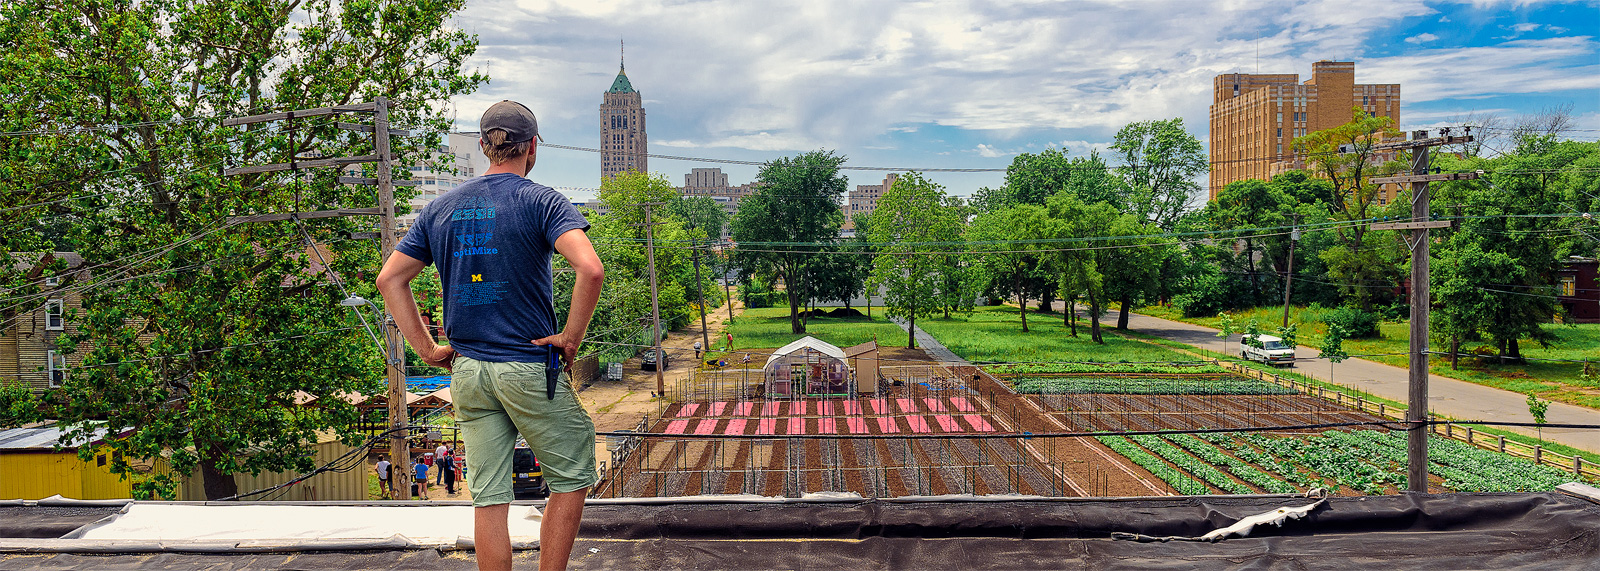 Tyson Gersh overlooking the Michigan Urban Farming Initiative